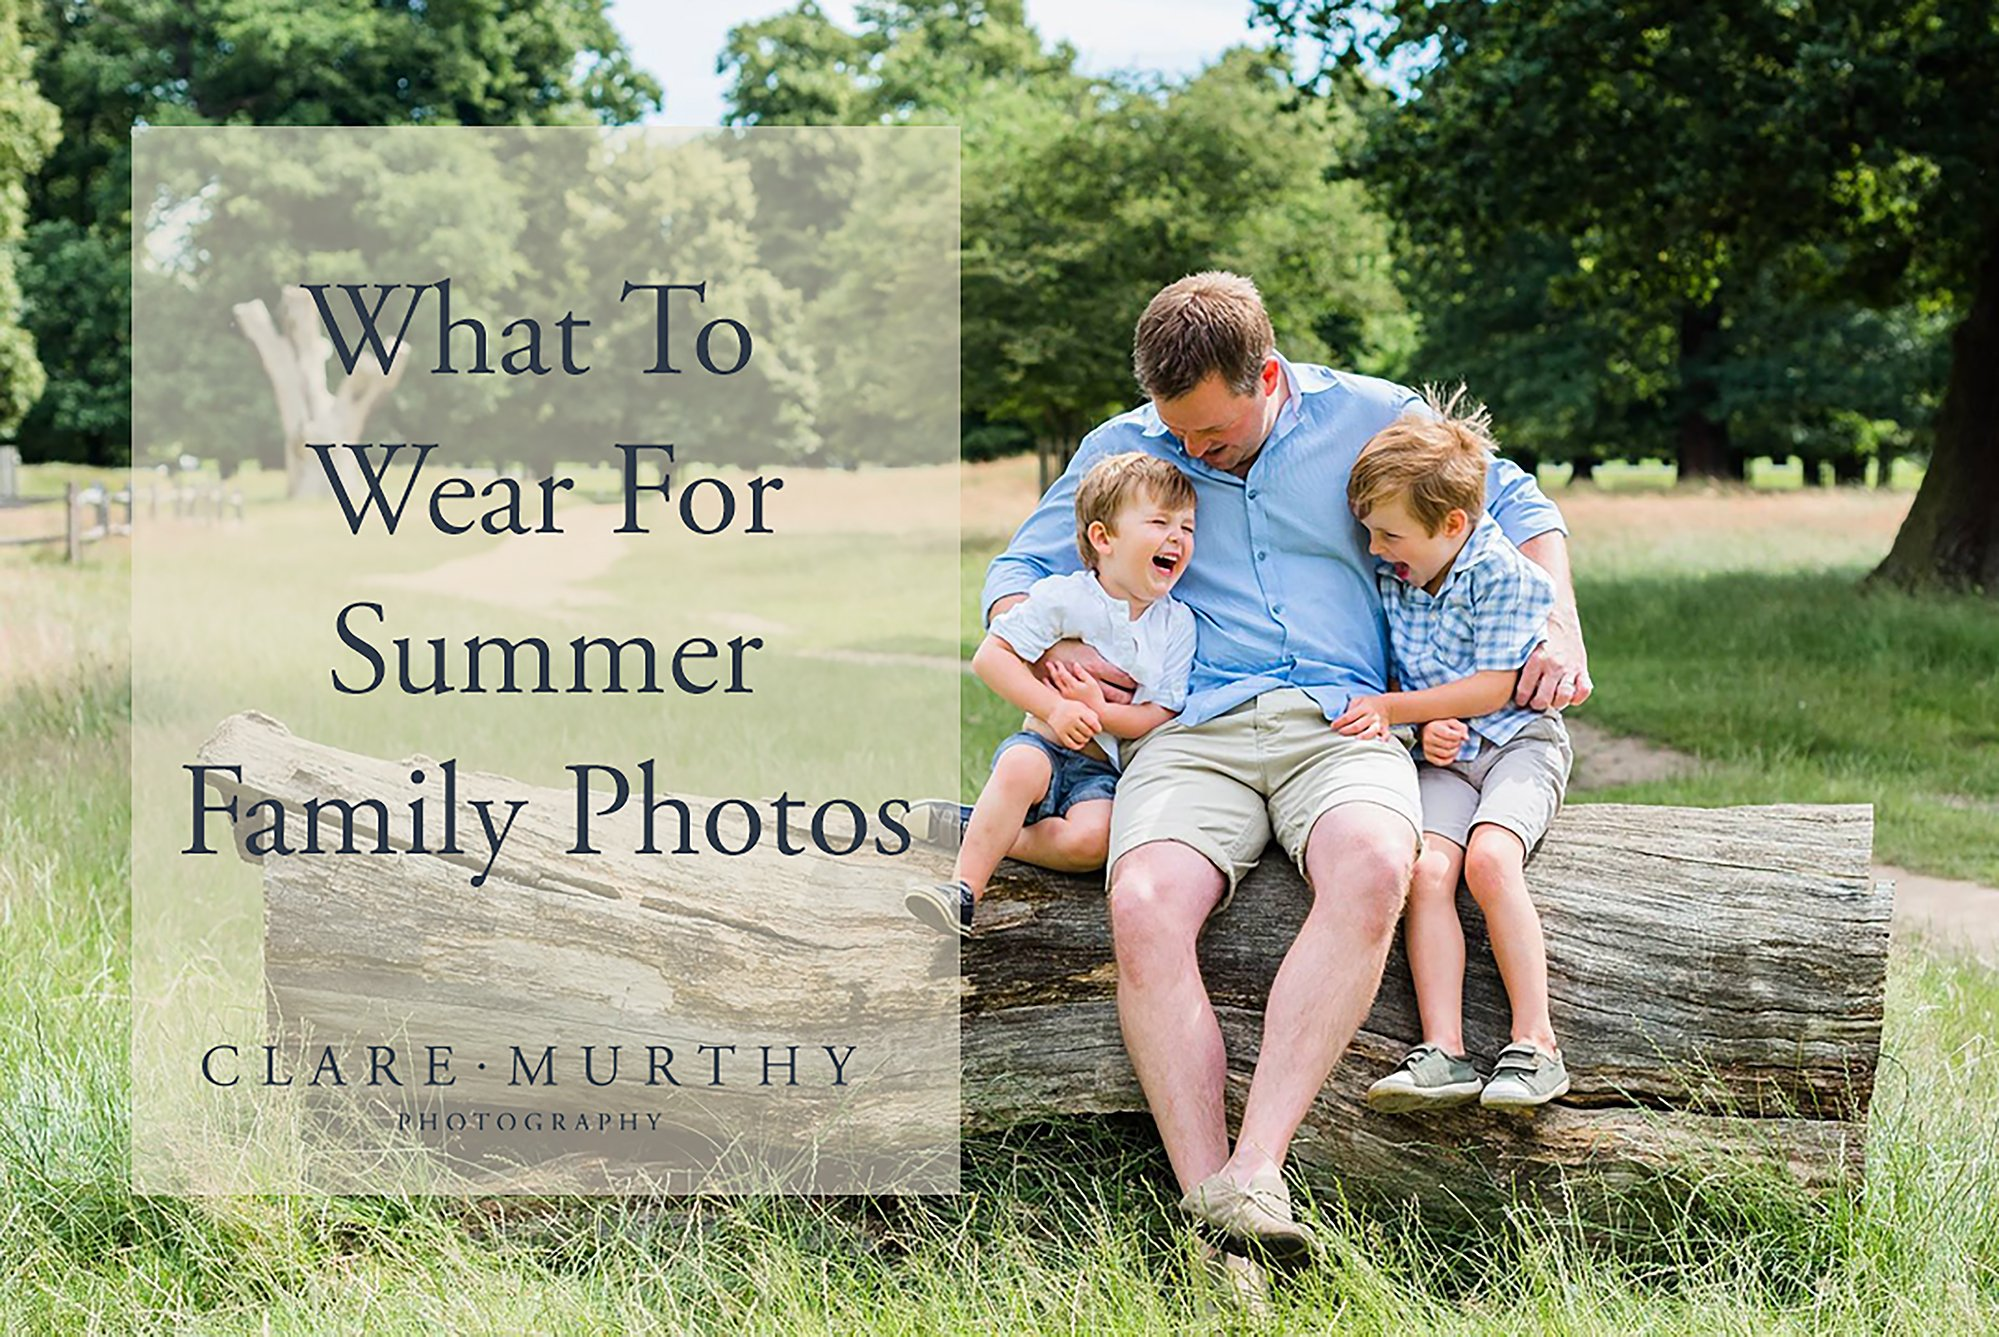 The best clothes to wear for summer family photos